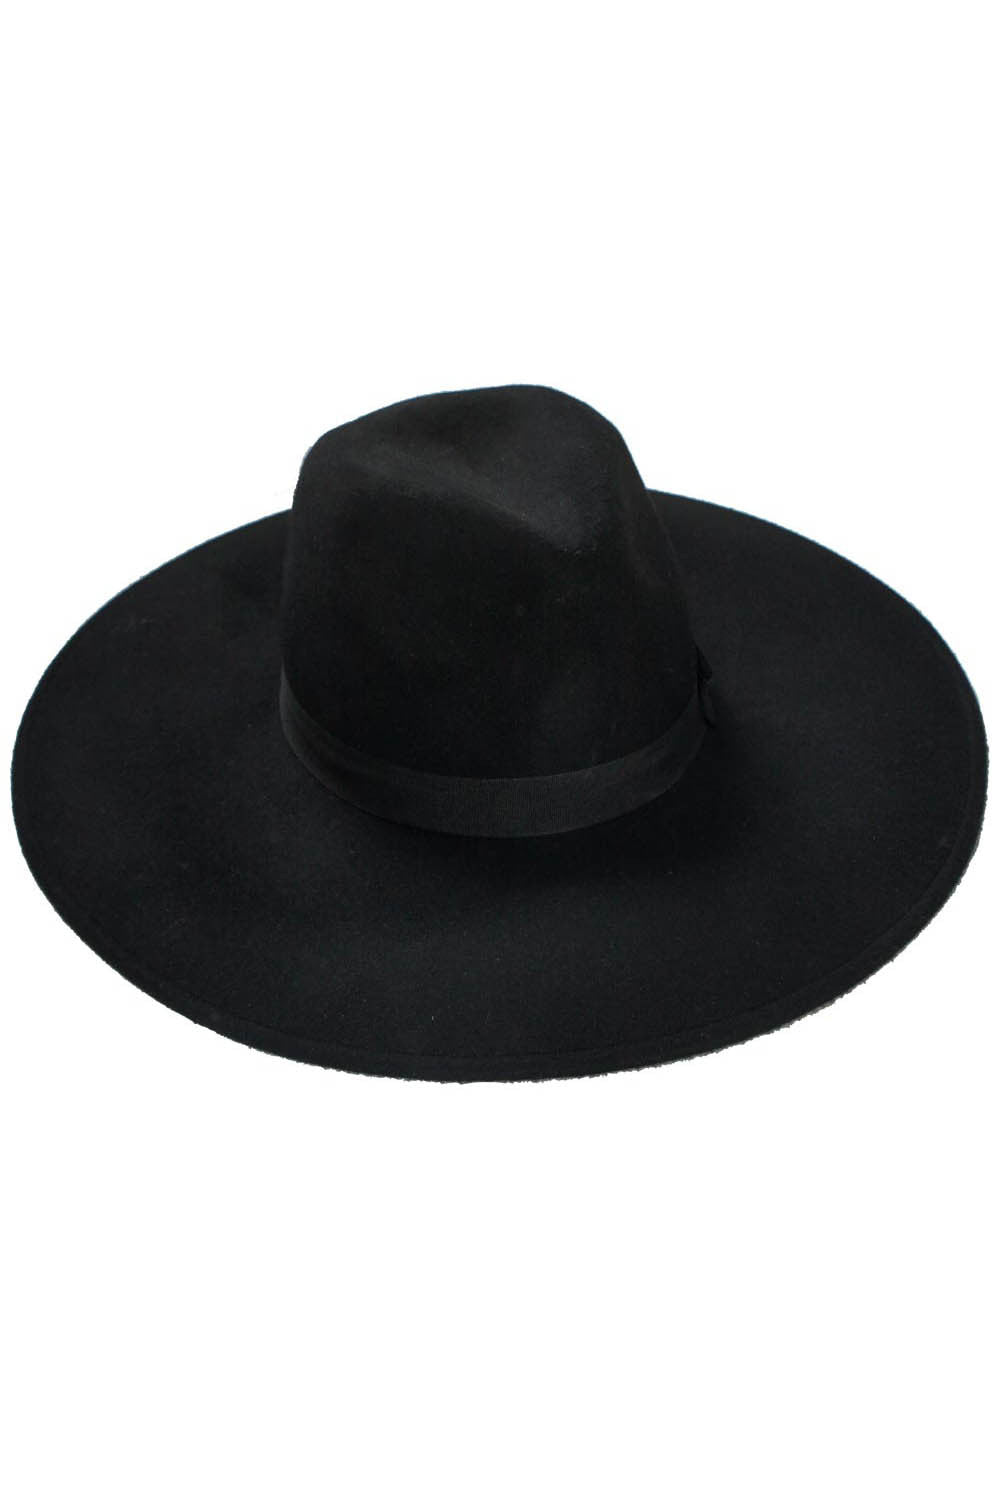 Witch Brim Hat in Black  35b747be65f